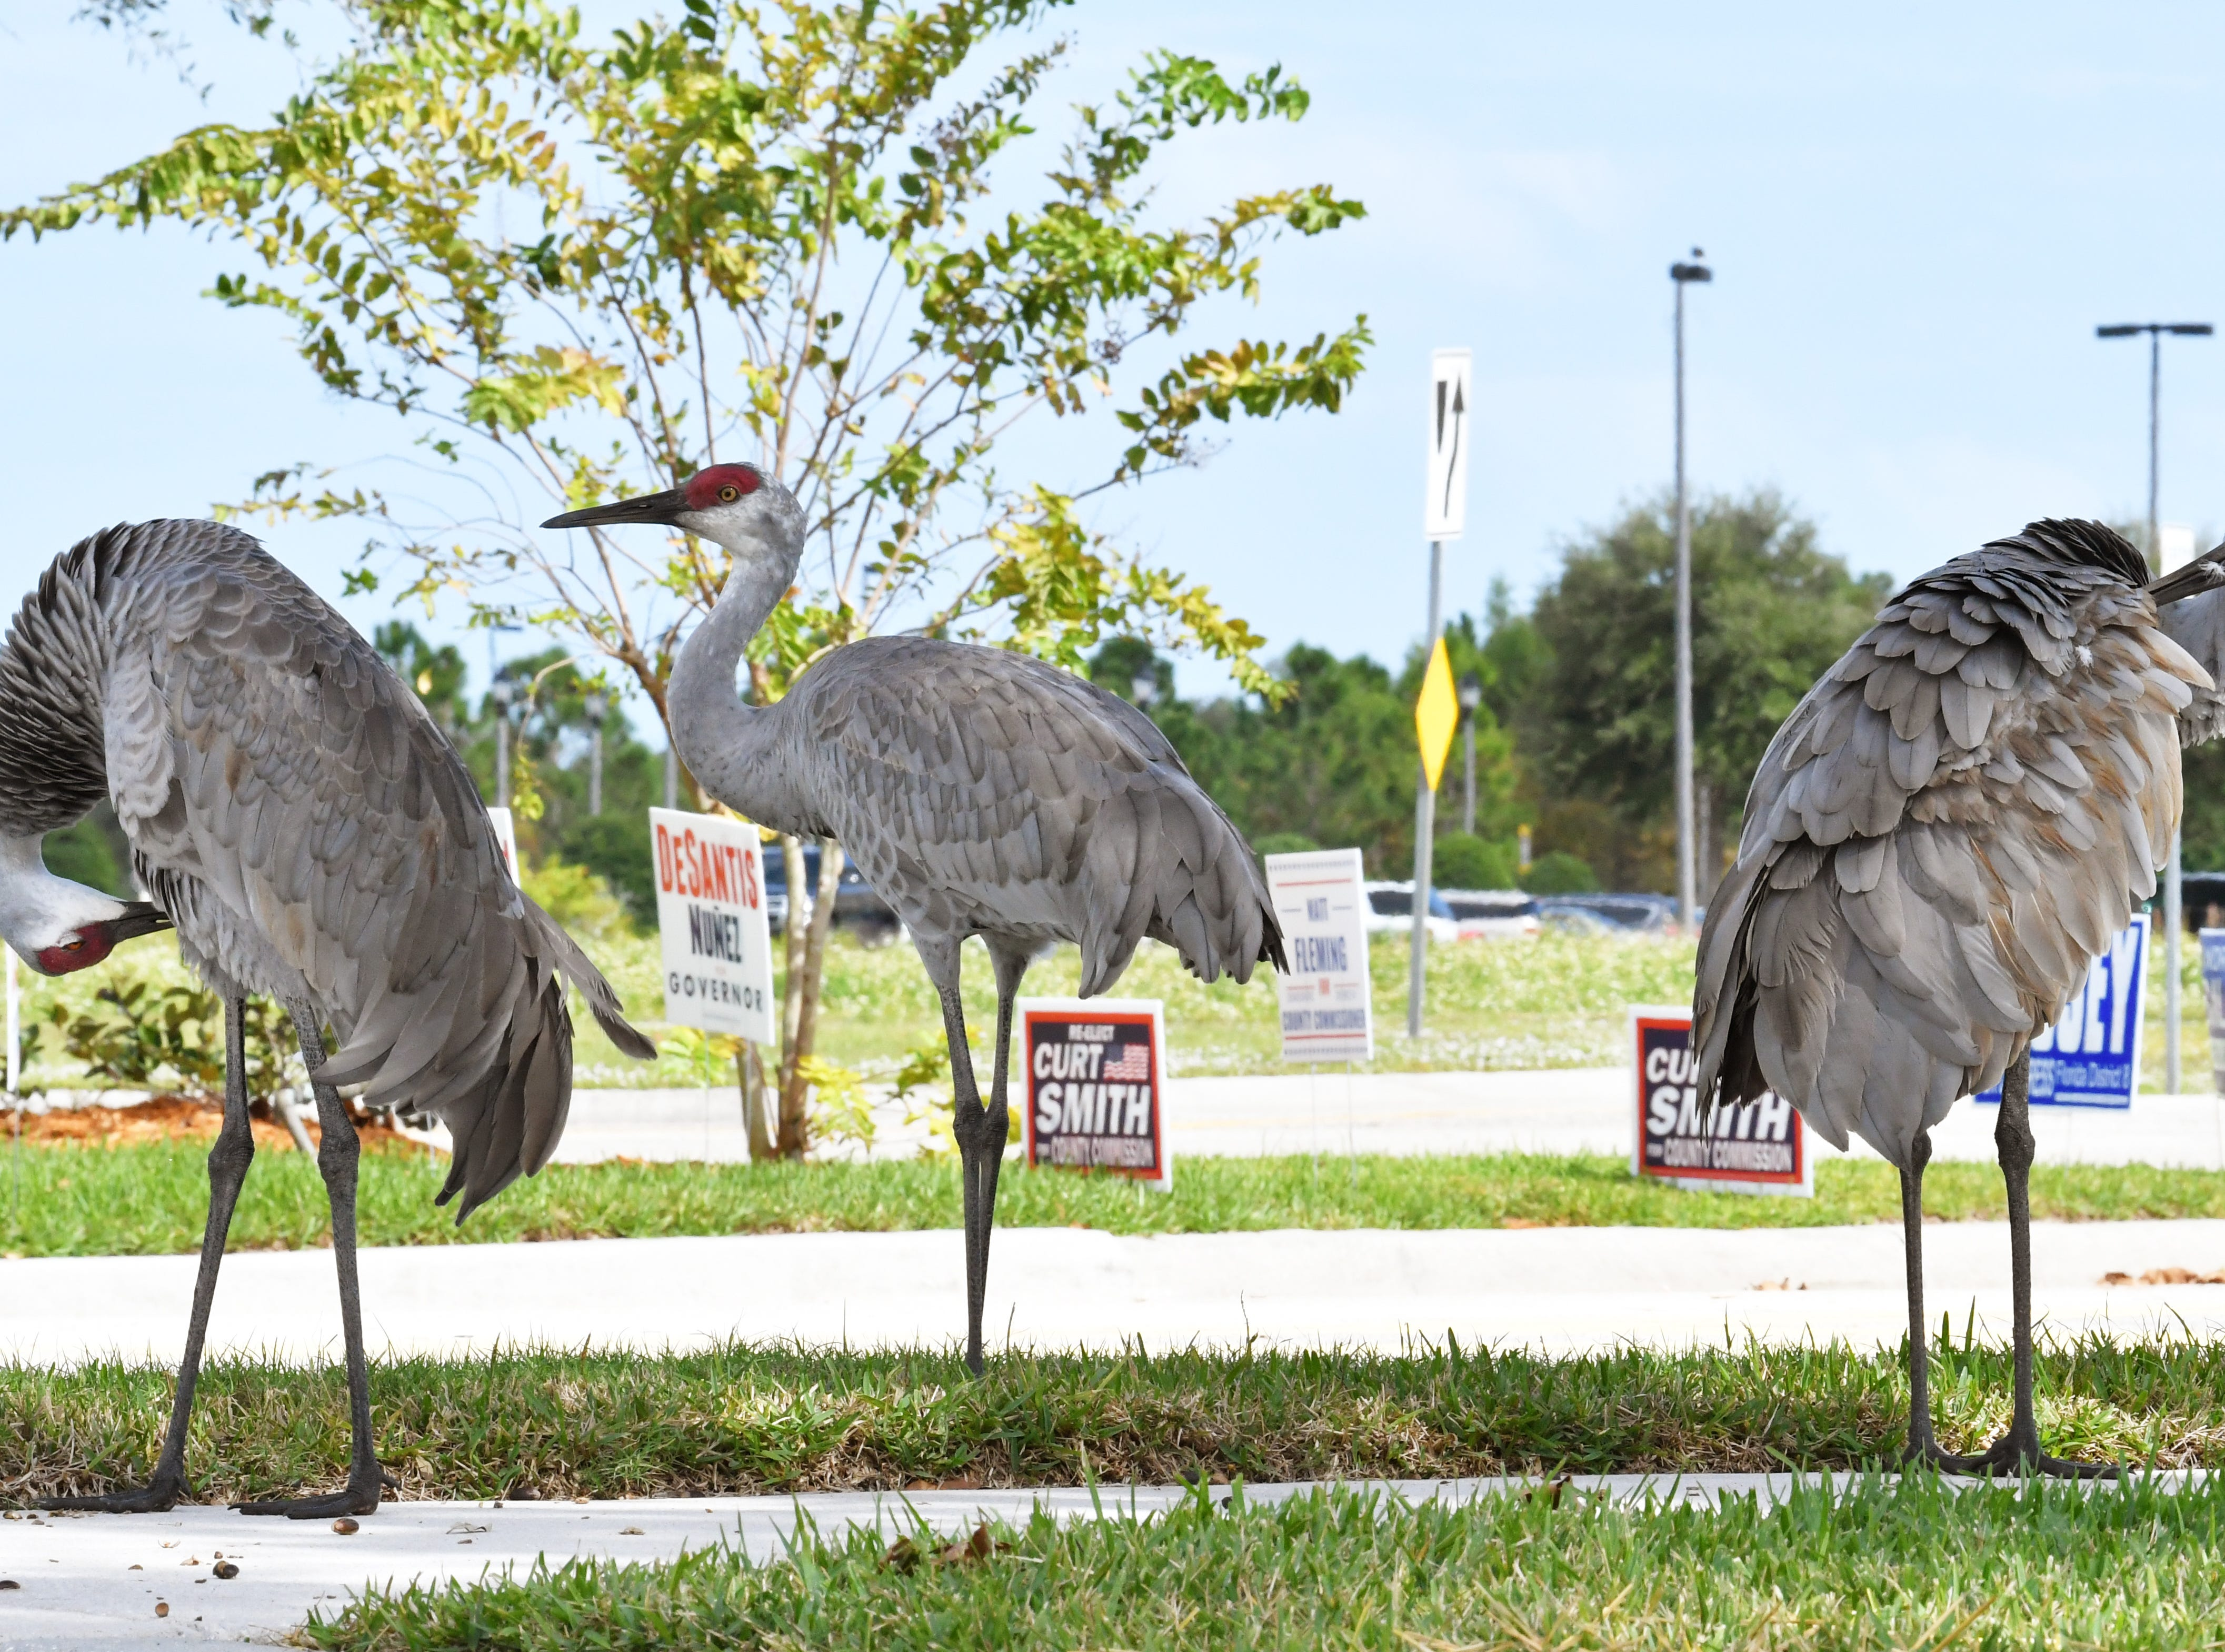 Sandhill cranes at the entrance to the Church at Viera, where several precincts were located. Election Day Tuesday scenes in Viera.